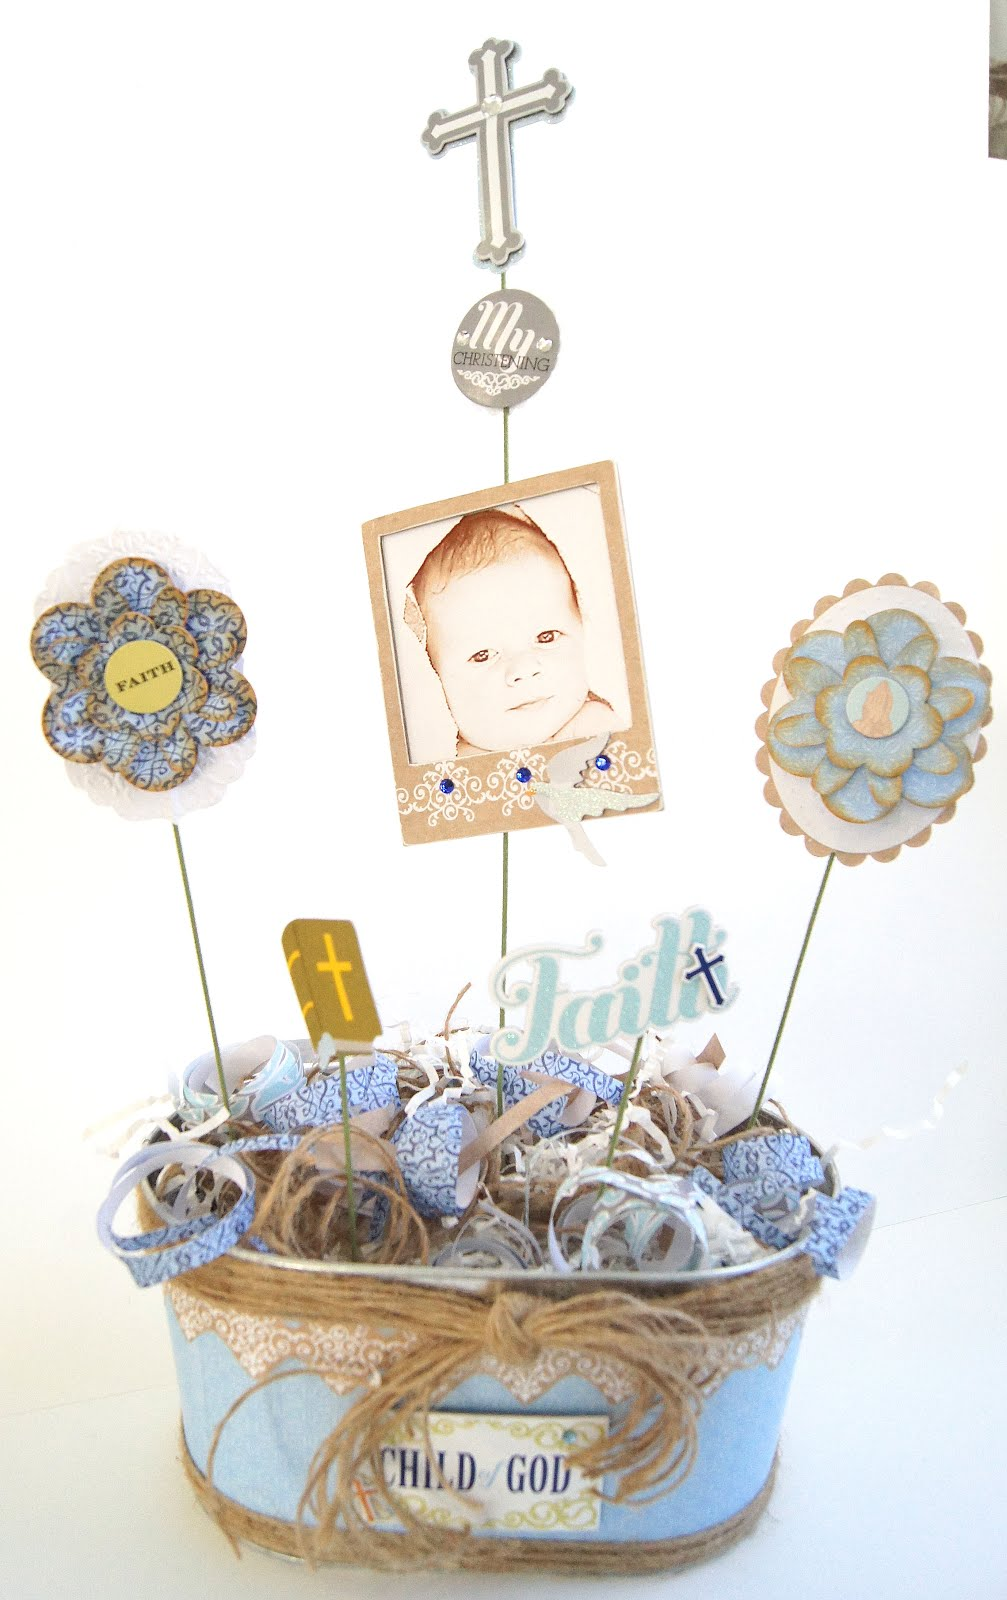 Maryfrances fabbri christening centerpiece show and tell - Simple baptism centerpieces ...